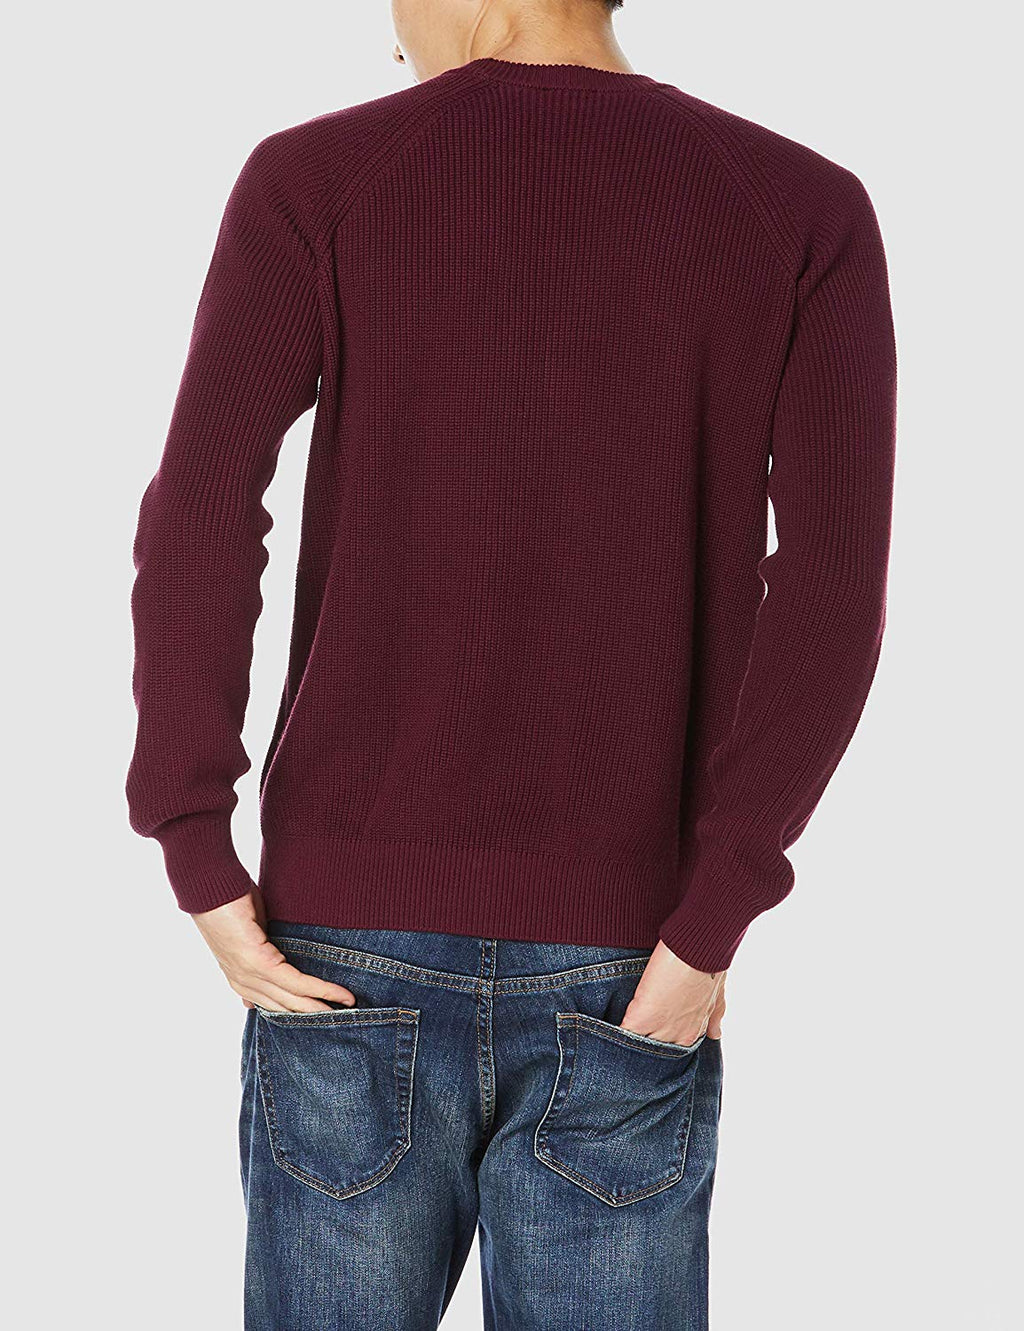 Spin Knit Sweater (Burgundy)